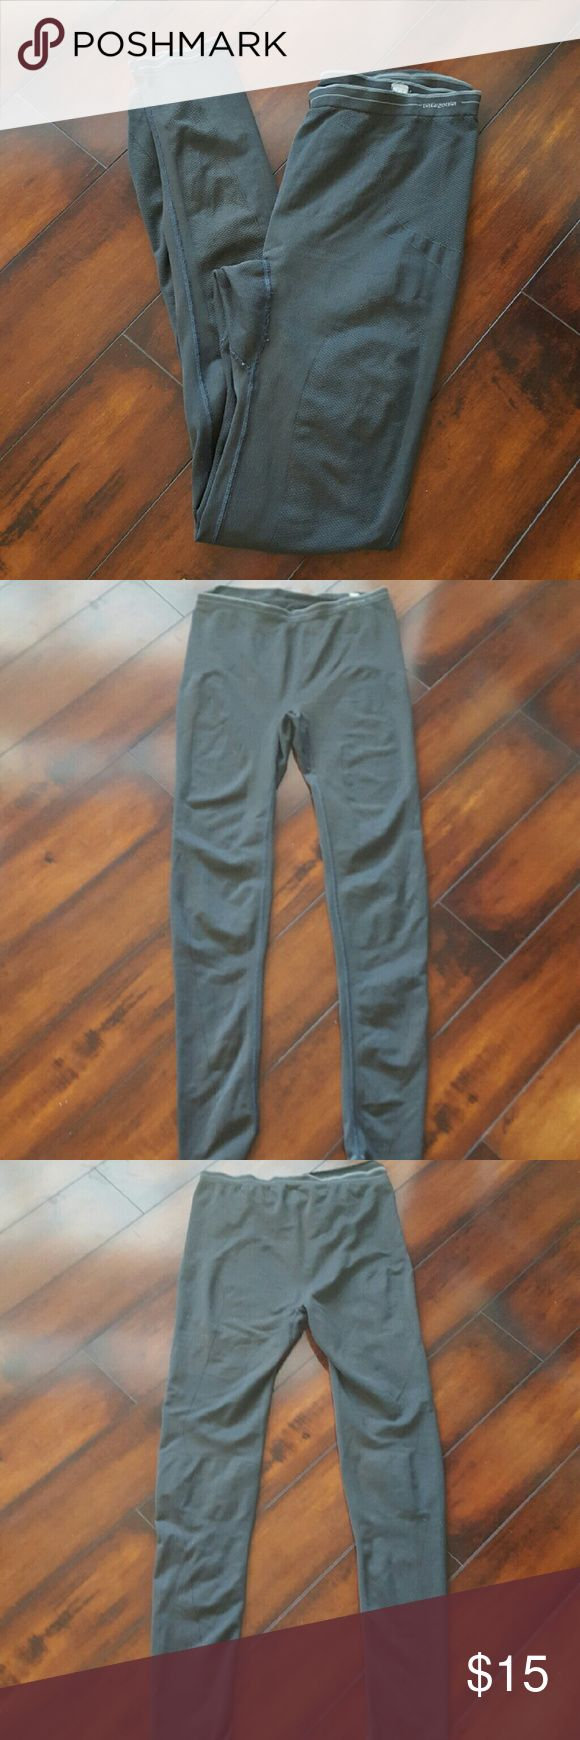 Men's Patagonia athletic pants, size large Men's dark grey Patagonia tight athletic pants, size large.  These hug your skin like tight long Johns would do.  No outside stains. Patagonia Pants Sweatpants & Joggers